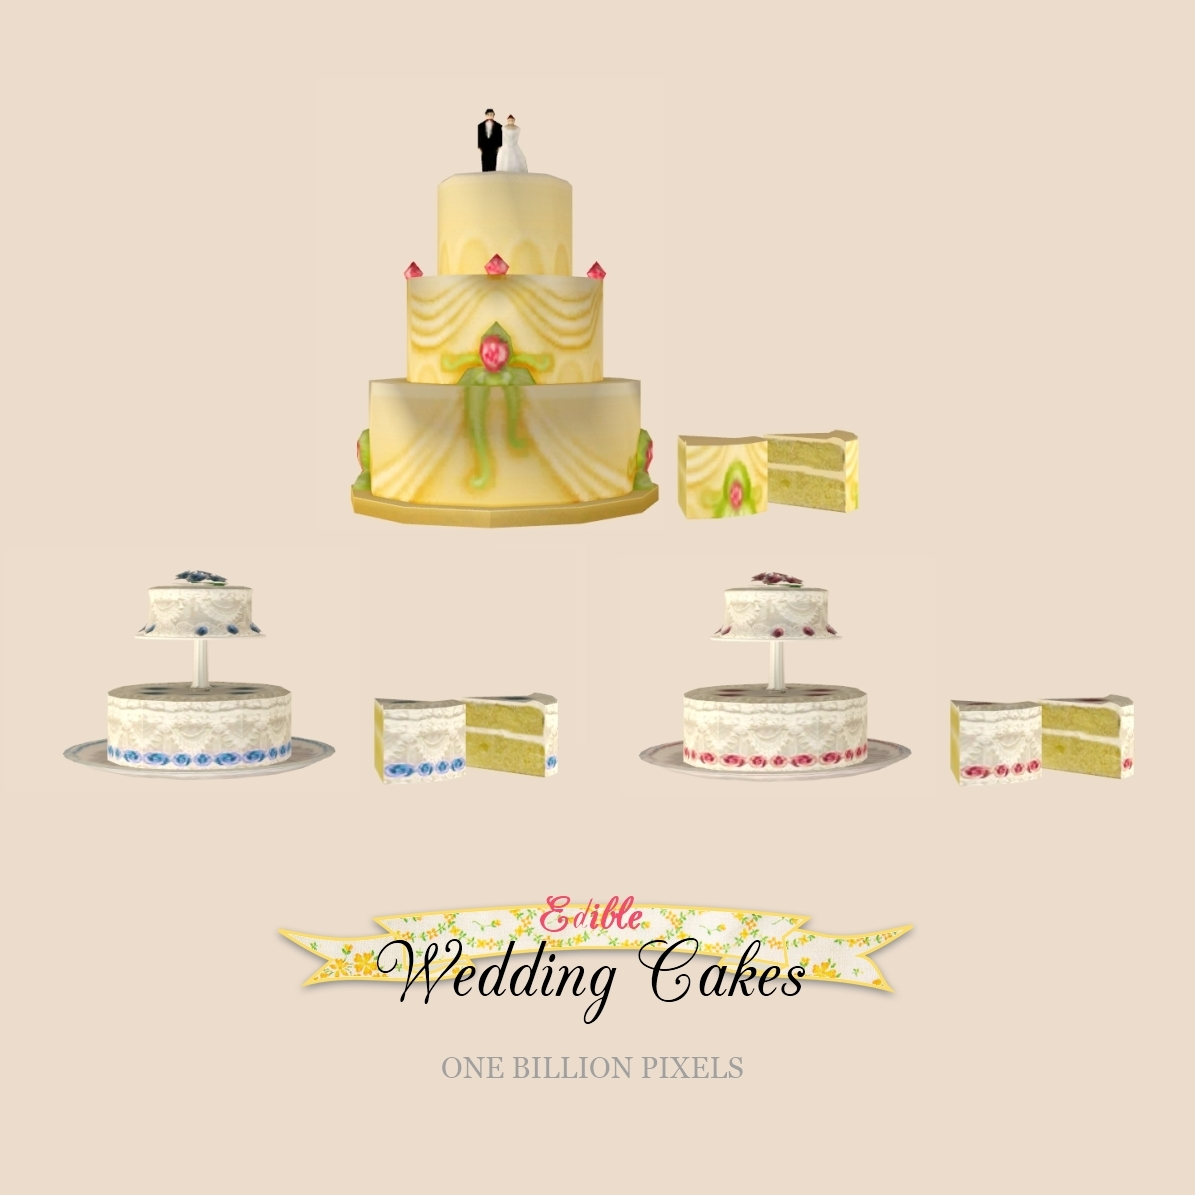 Beautiful wedding cakes for young: Where to get wedding cake sims 4